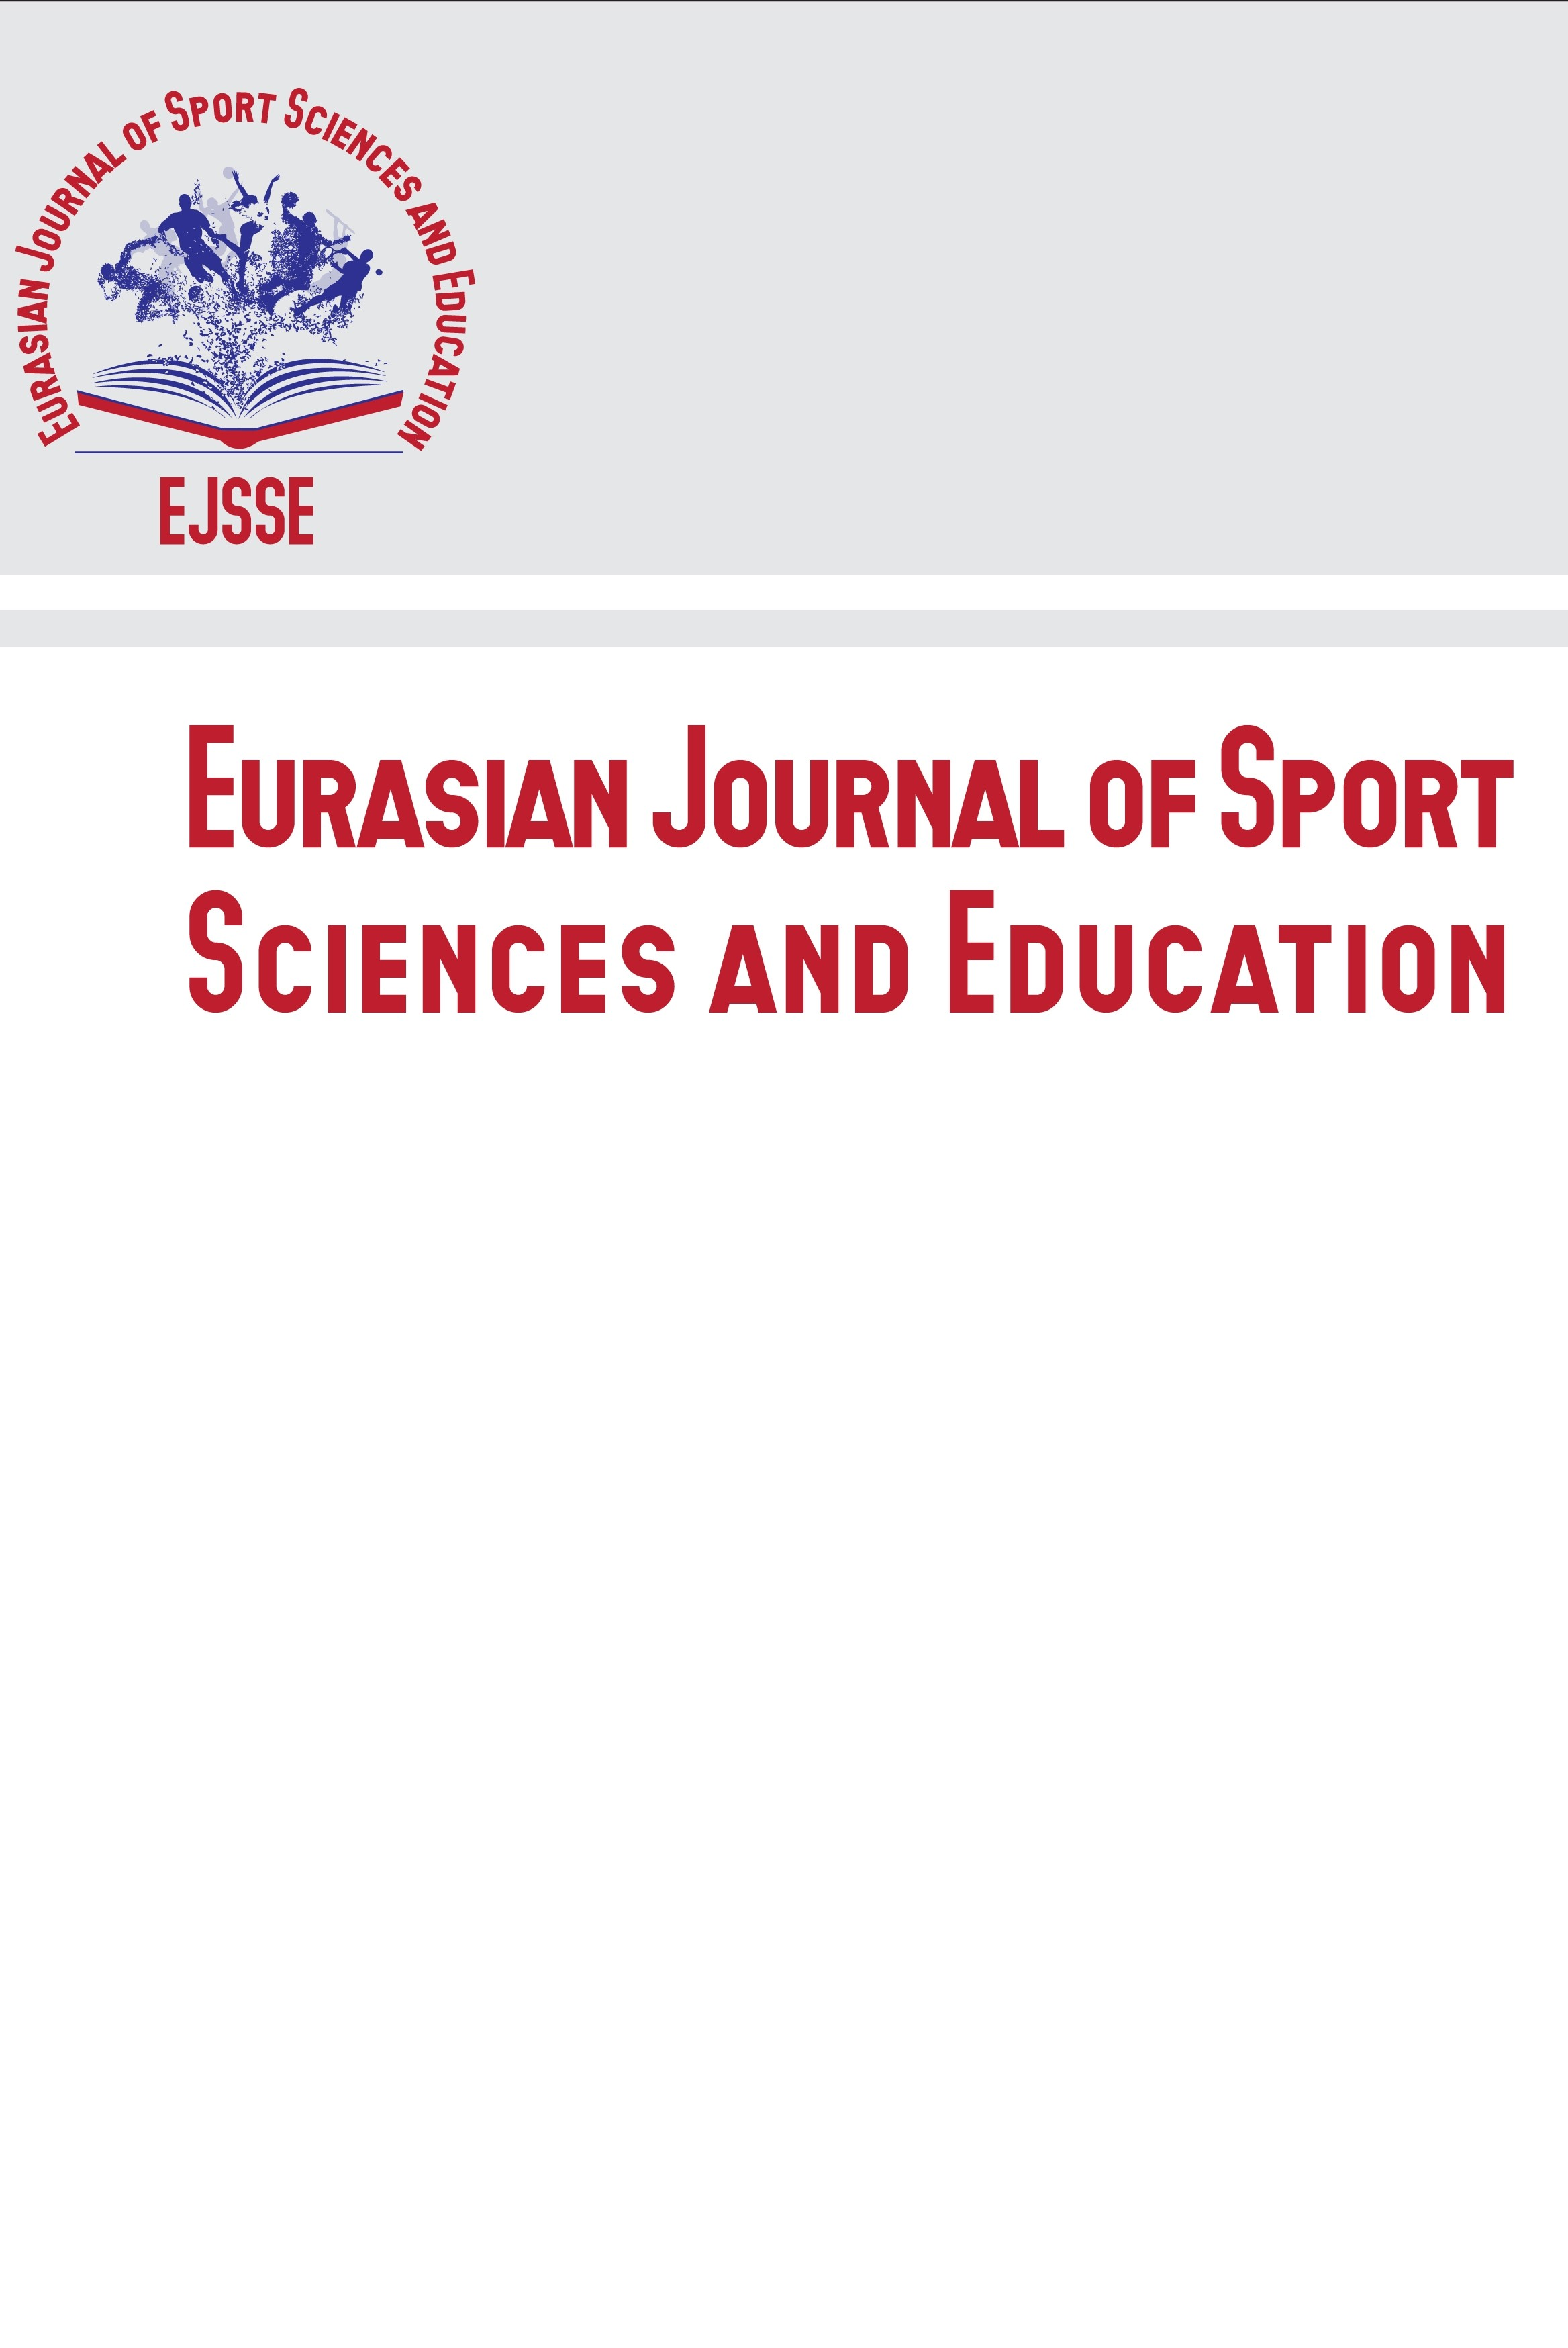 Eurasian Journal of Sport Sciences and Education